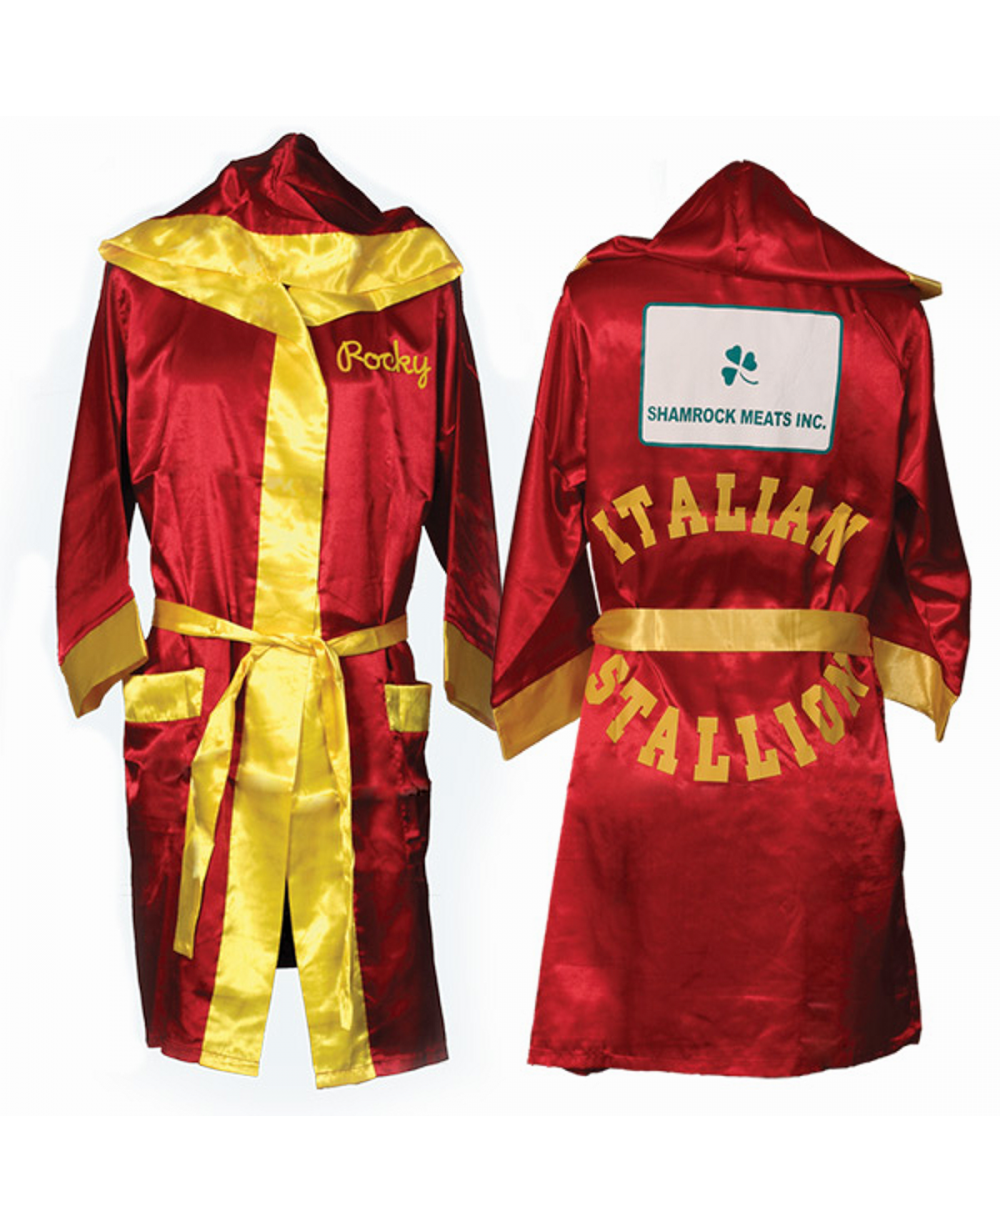 80a73b6e31 More Views. Italian Stallion Red And Gold Rocky Robe